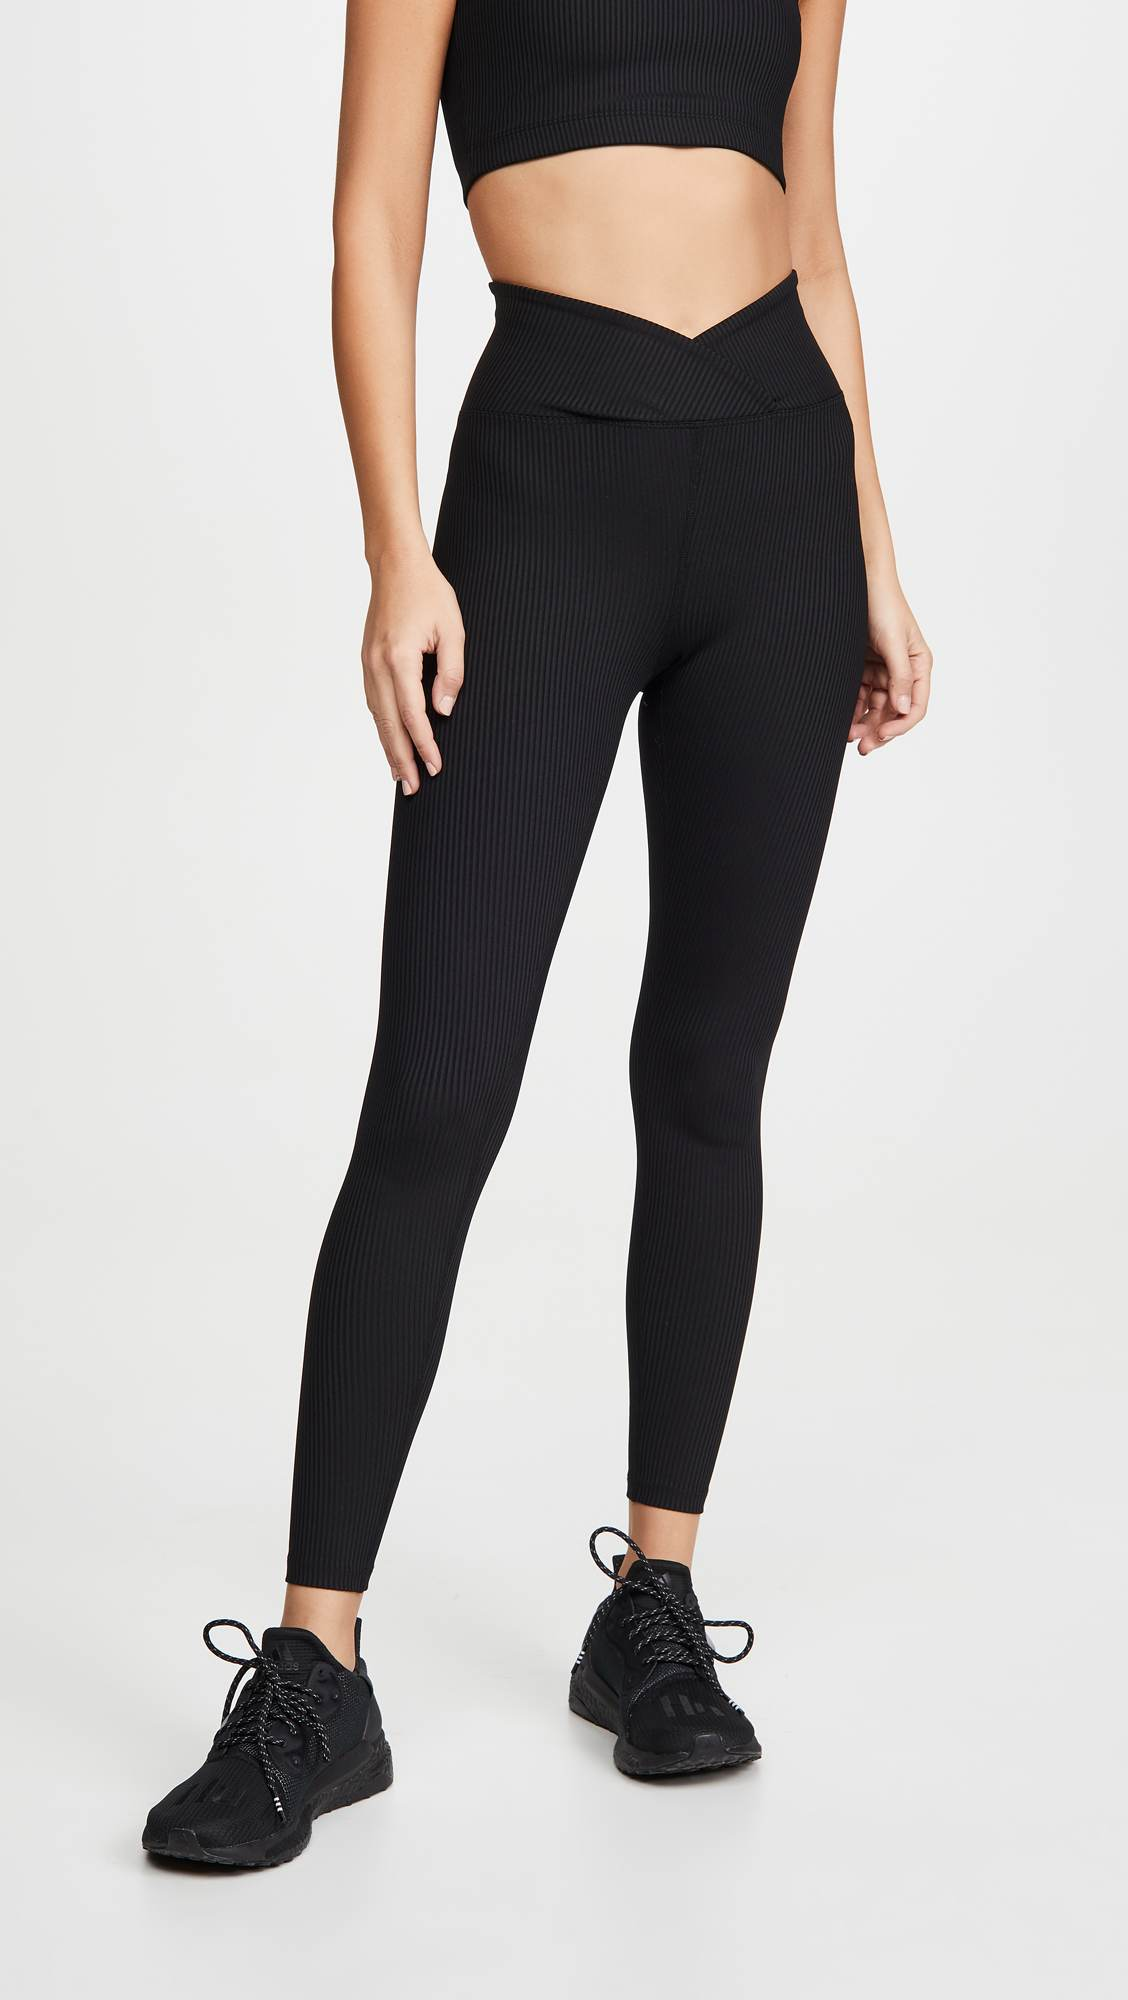 Veronica Leggings by Years of Ours, available on shopbop.com for $104 Kendall Jenner Pants Exact Product